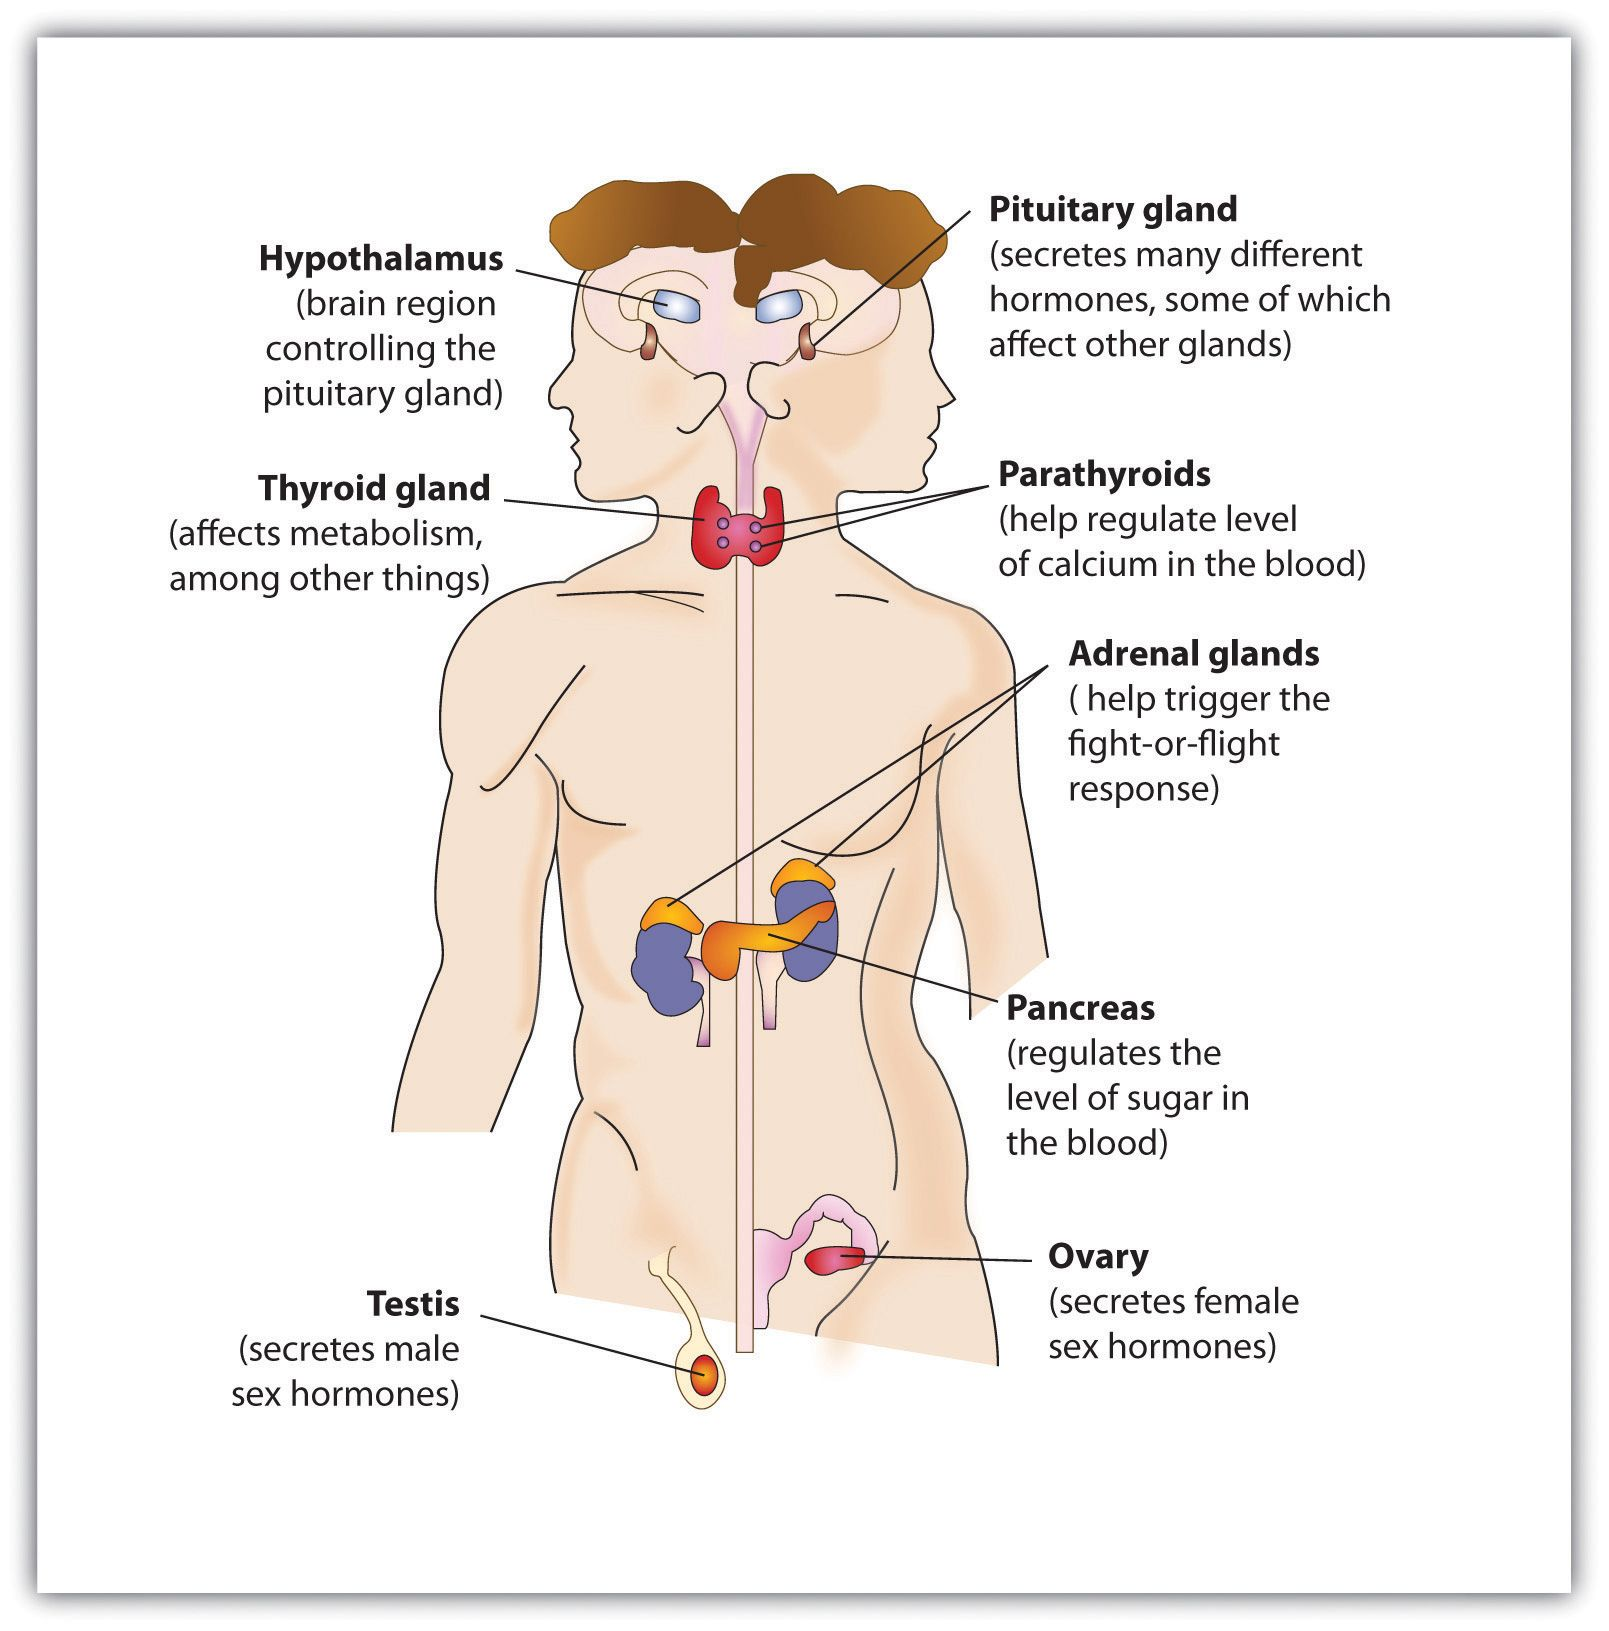 The Endocrine System Is Composed Of Endocrine Glands And Specialised